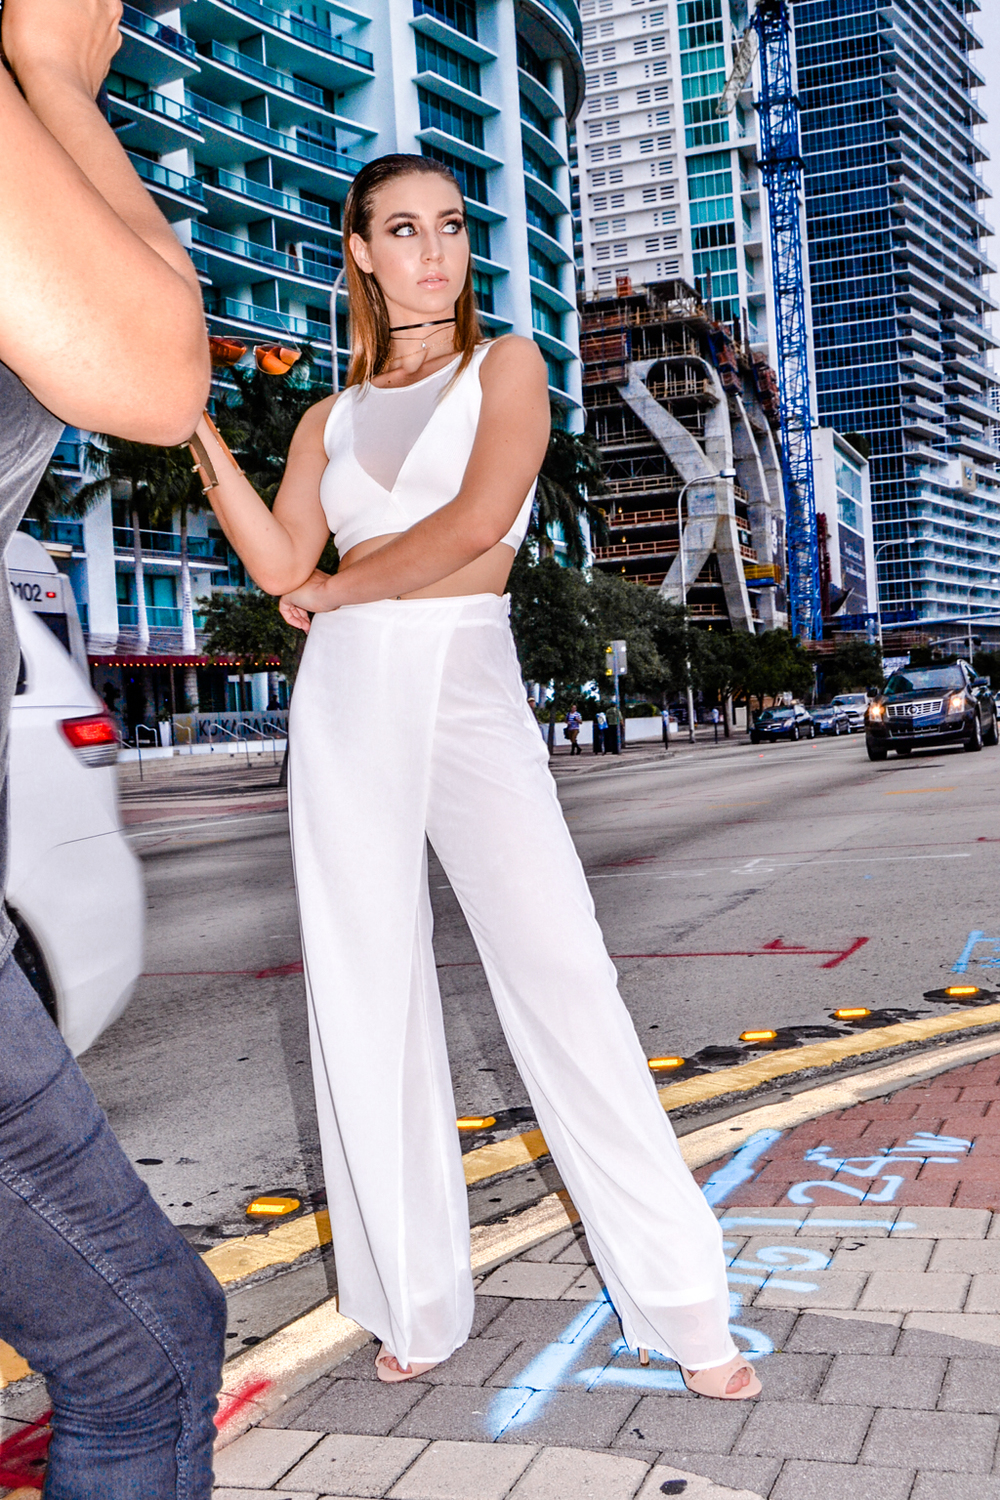 behind-the-scenes-style-link-miami-illy-perez-fashion-photography-12.jpg